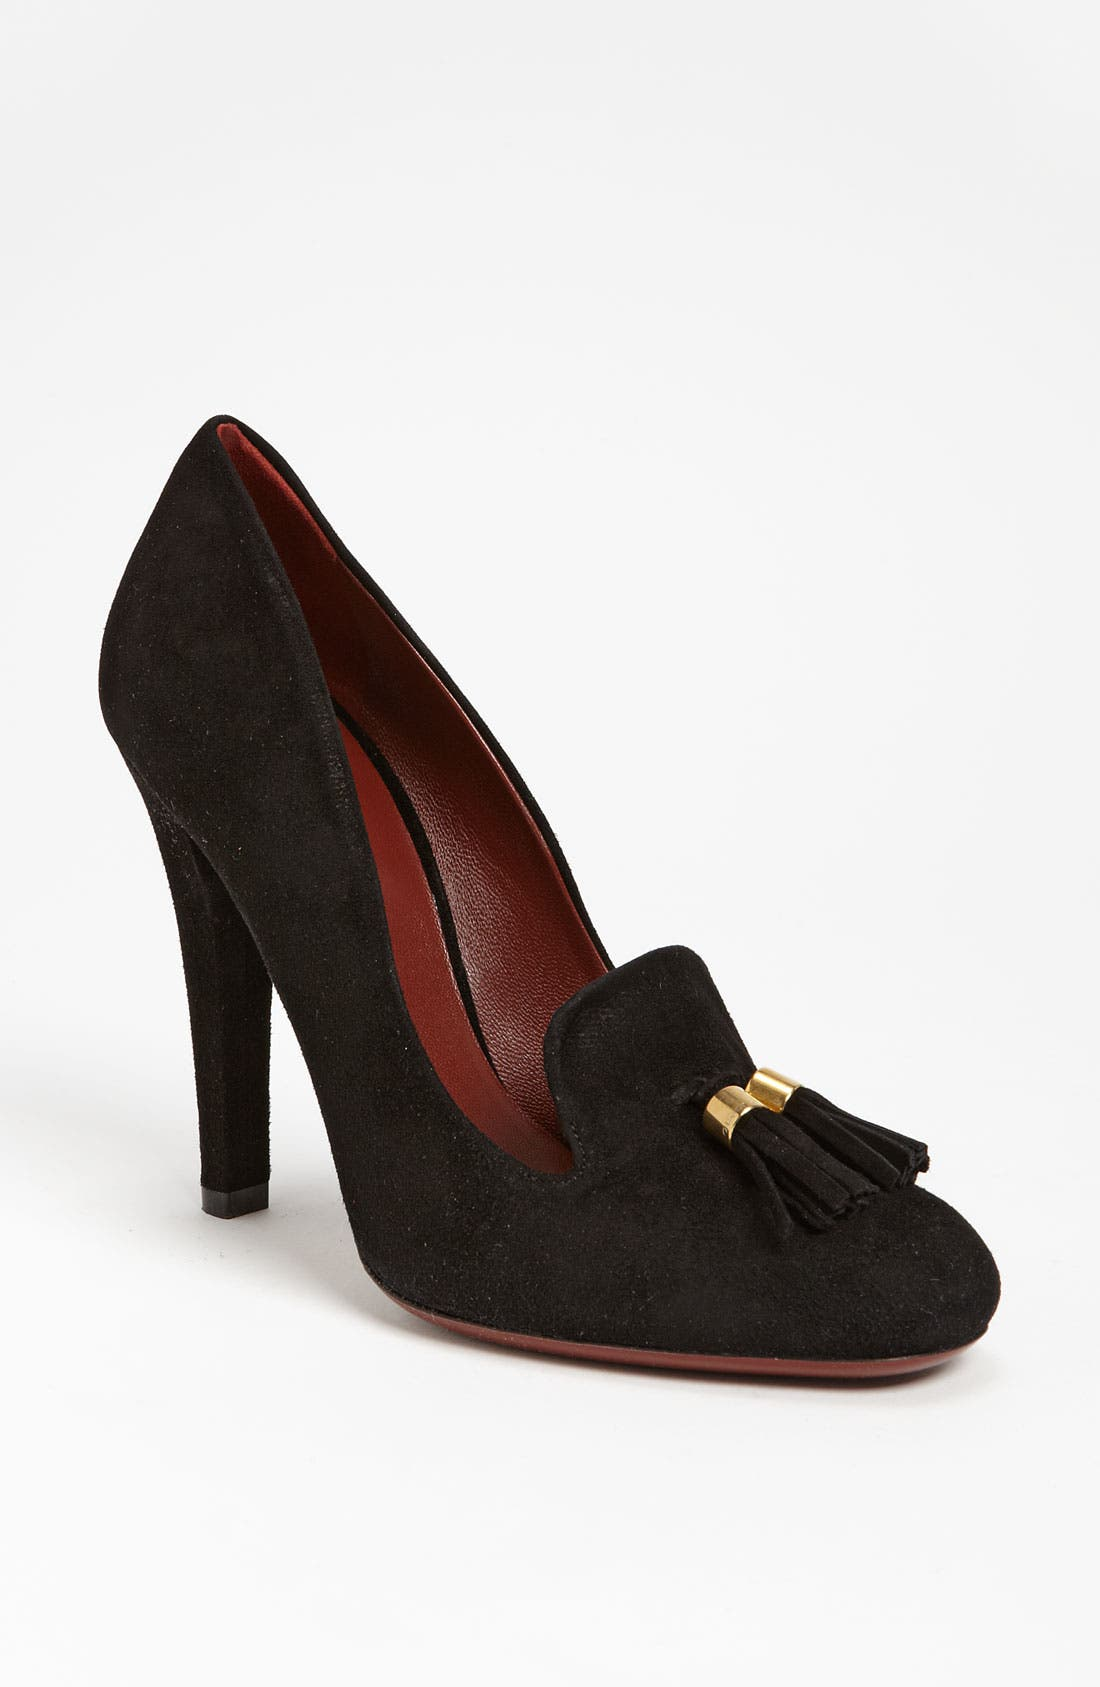 Main Image - Gucci 'Mischa' Loafer Pump